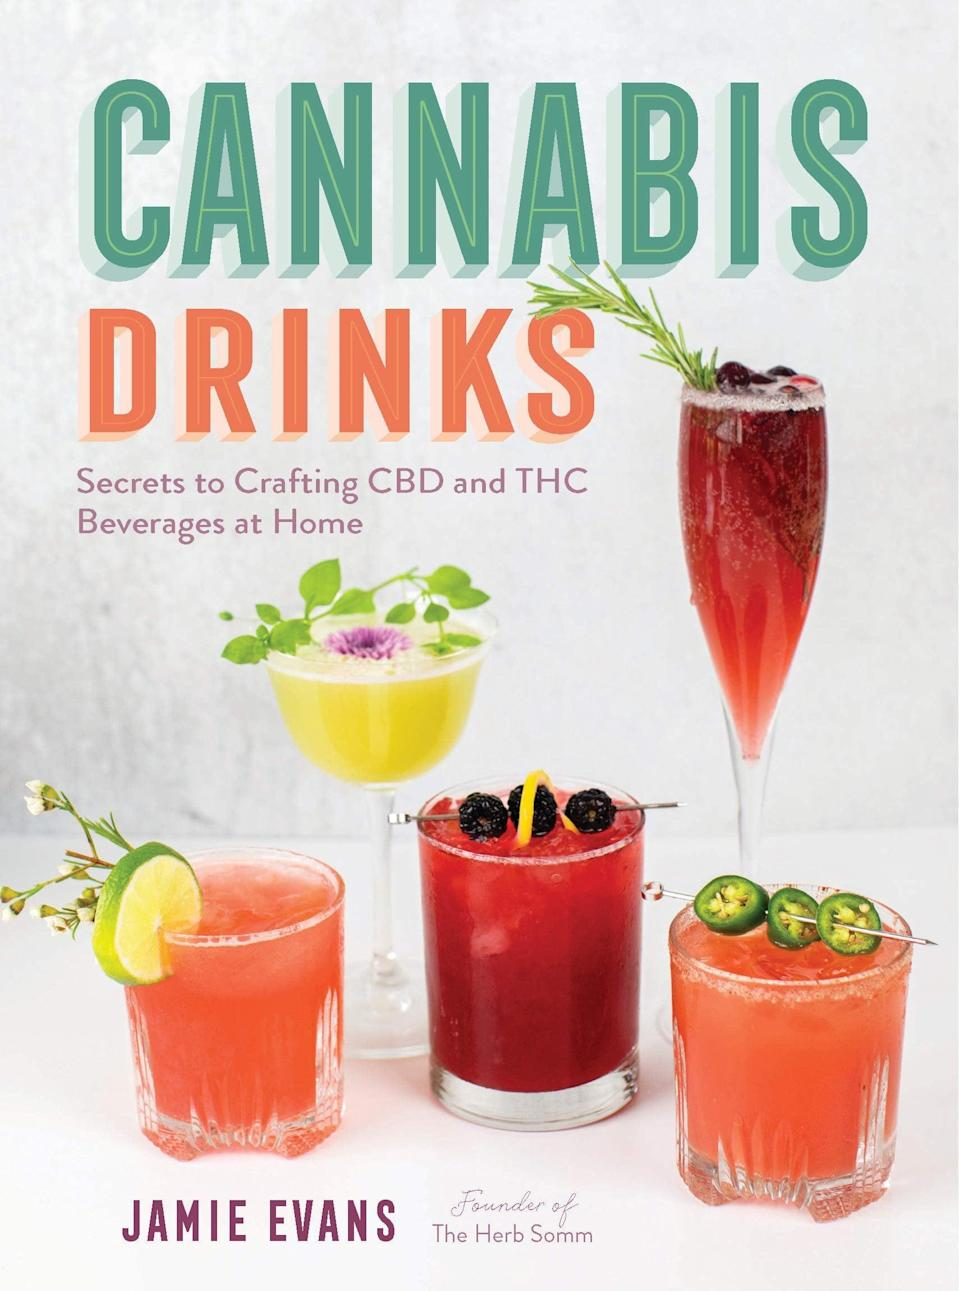 <p>If you're an amateur mixologist, you need to check out the <span>Cannabis Drinks: Secrets to Crafting CBD and THC Beverages at Home by Jamie Evans </span> ($20). Take your bartending to a higher level with this all-inclusive cocktail cookbook. It features more than just alcoholic recipes including creating your own infused bitters and sours, coffee and teas, and juices and smoothies.</p>